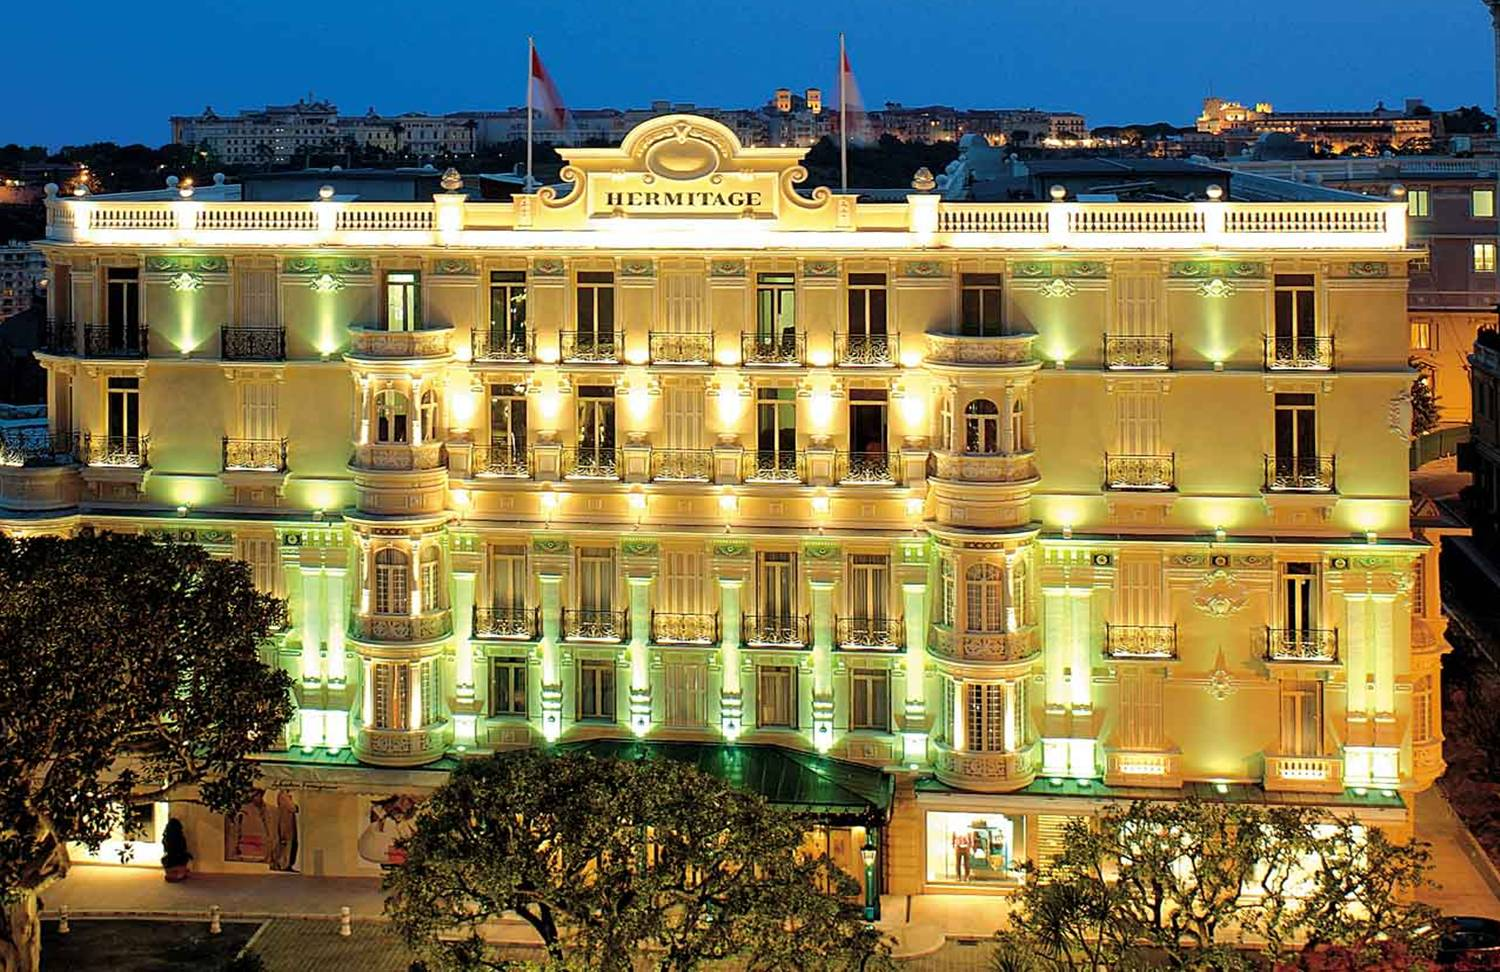 Hotel Hermitage - La Salle Belle Epoque - From £510 per person